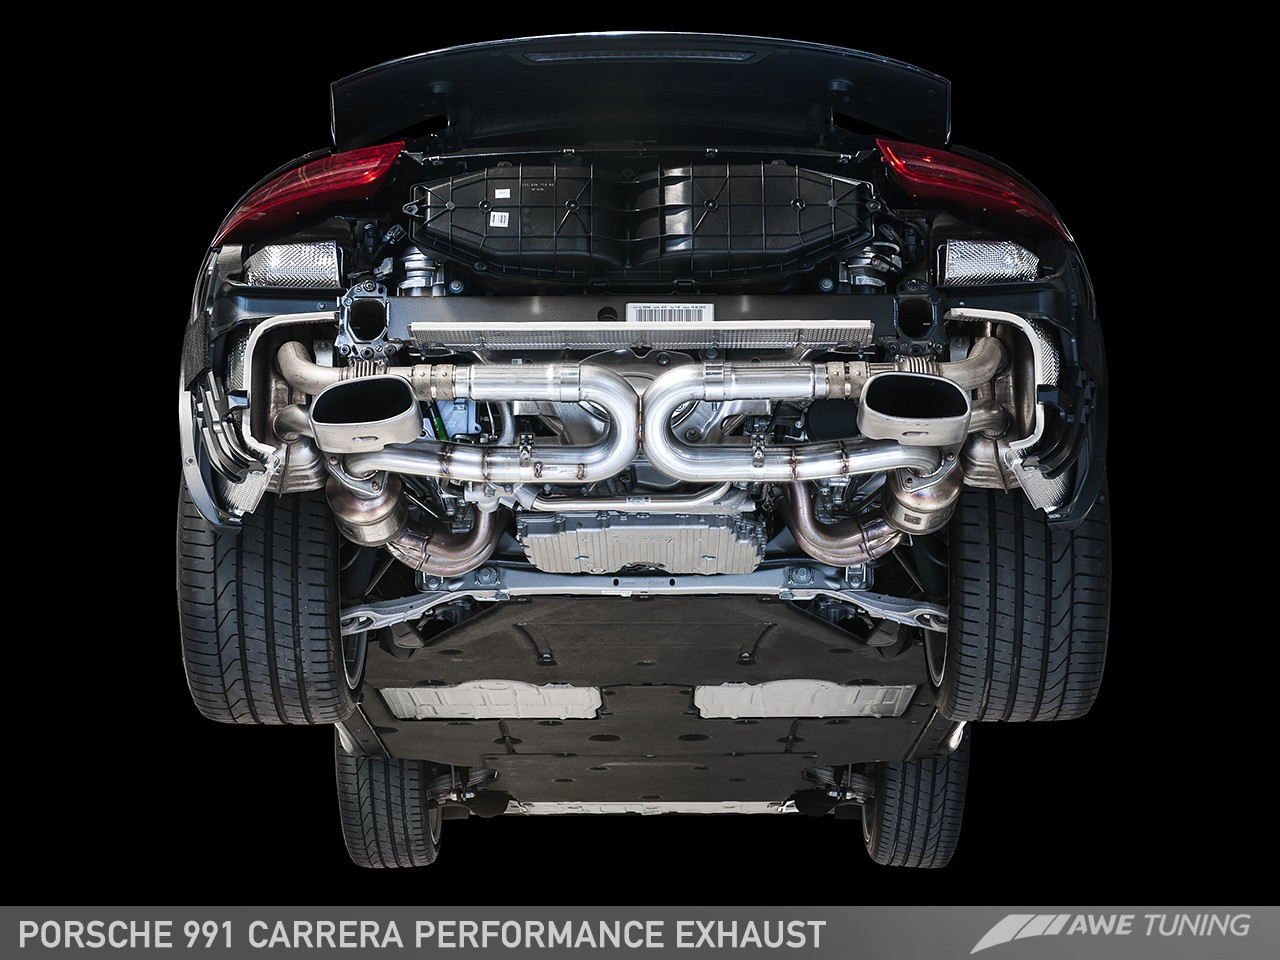 awe tuning performance exhaust for porsche 911 carrera 991 use stock tips